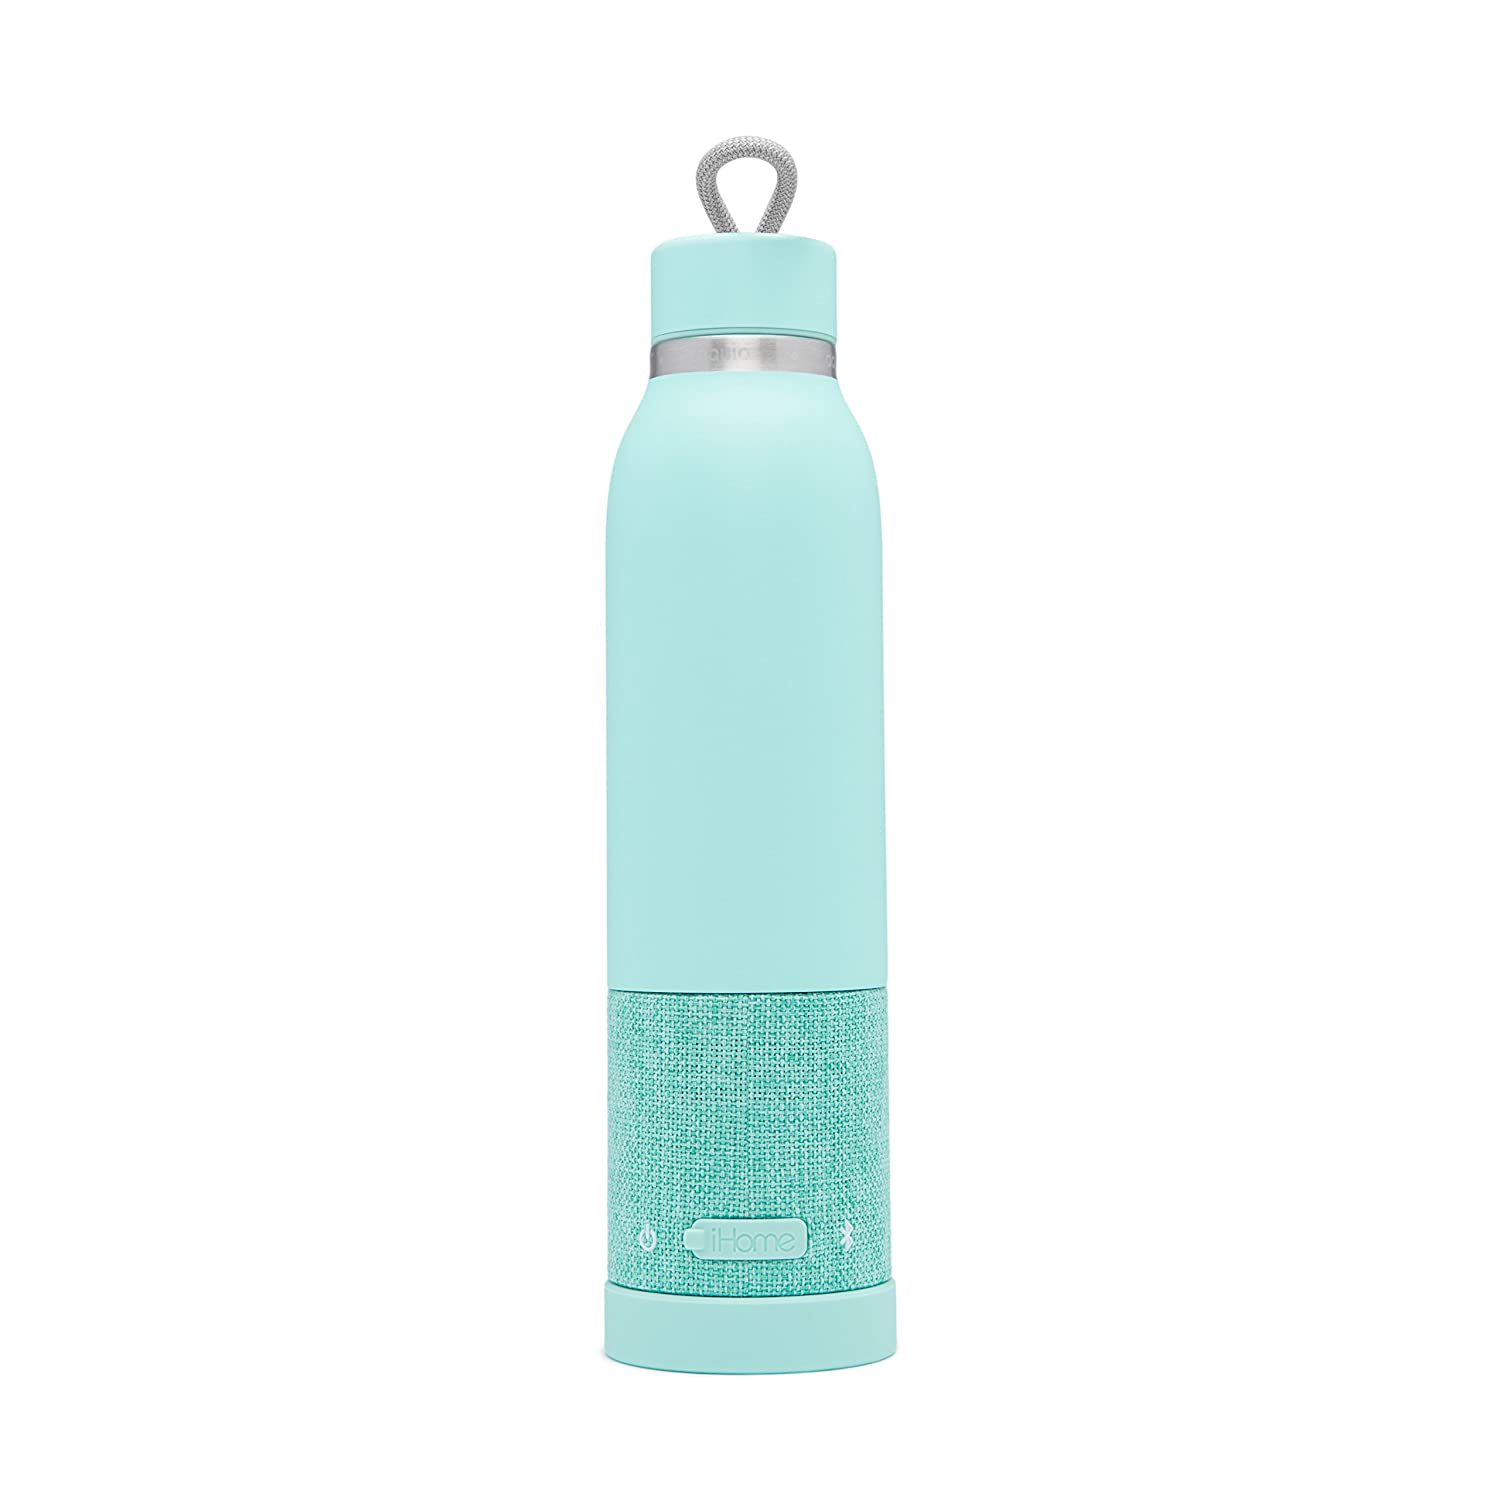 b64092d70a Amazon.com: Aquio IBTB2QQ Double-wall Steel Insulated Hydration Bottle with  Rechargeable Bluetooth Wireless Speaker, Powered by iHome, Seafoam:  Electronics